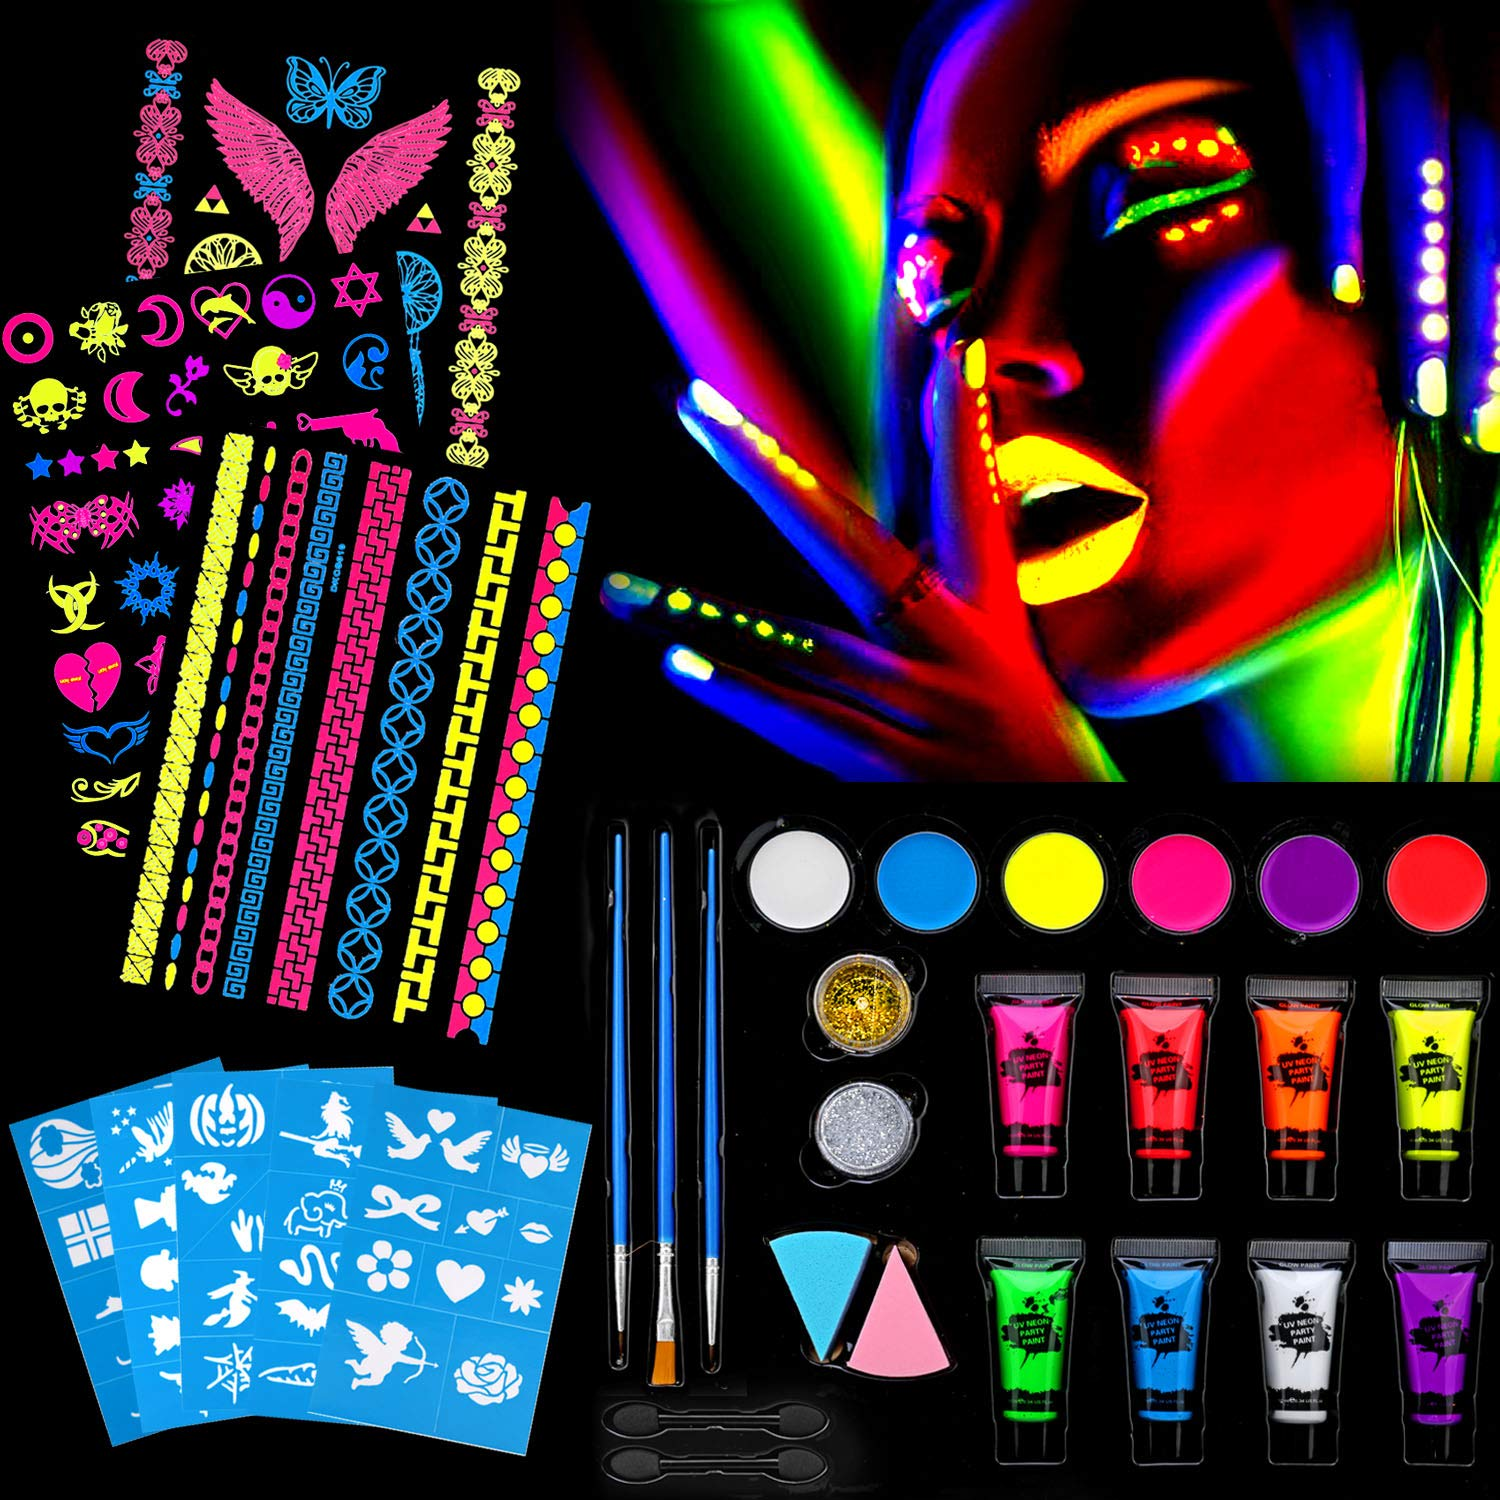 UV Glow Water Based face & Body Painting kit, HOWAF UV Body Art & Temporary Tattoo Kit with Glitter Powder, Templates, Brushes, Sponges, Gift for Kids and Parties, Halloween Makeup